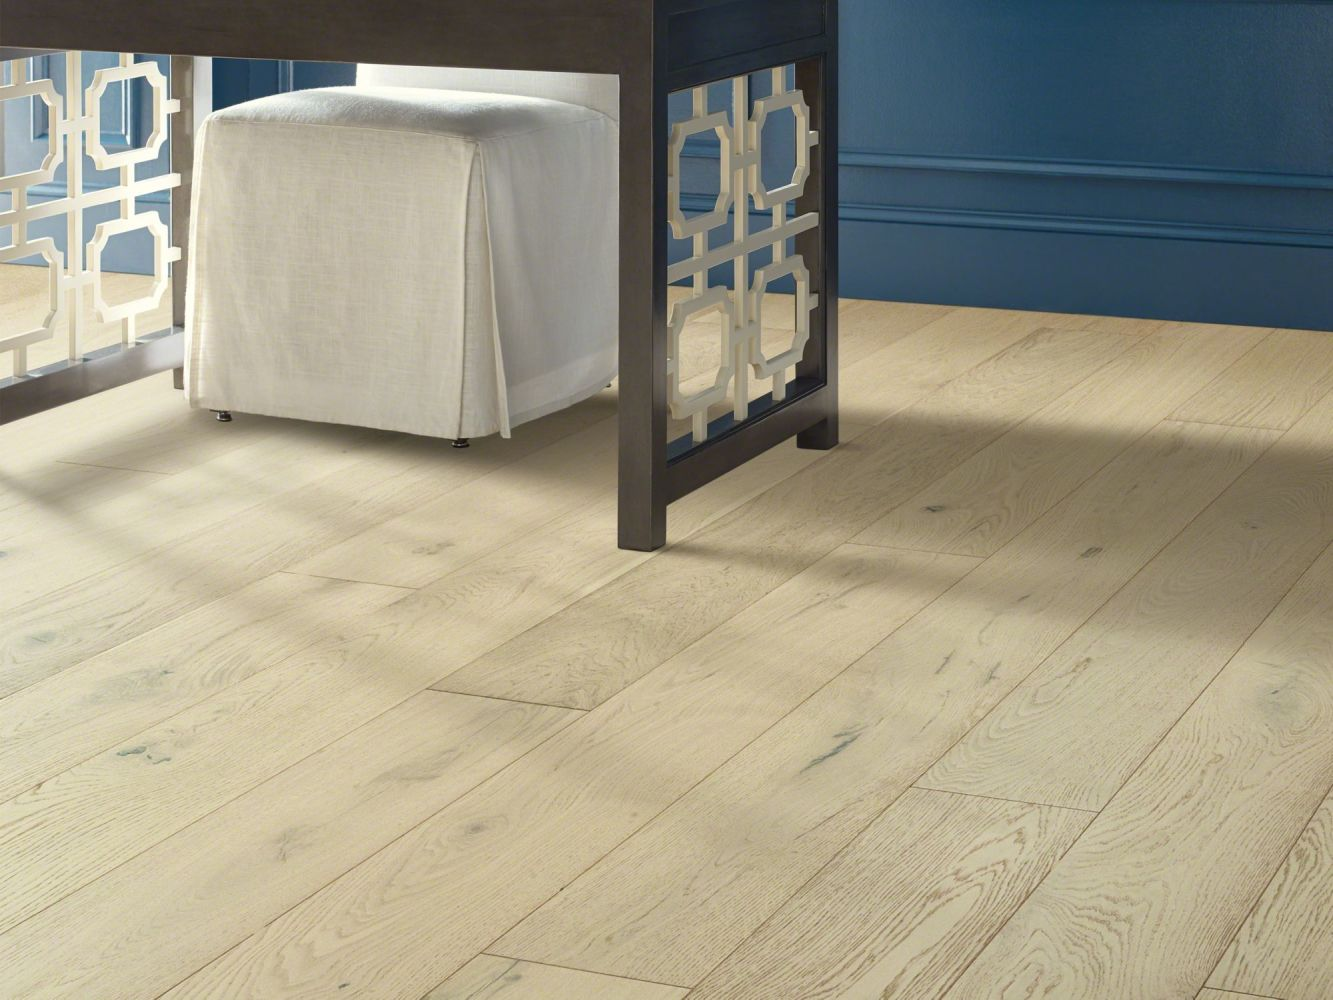 Shaw Floors Home Fn Gold Hardwood Elegance Oak Champagne 01045_HW689